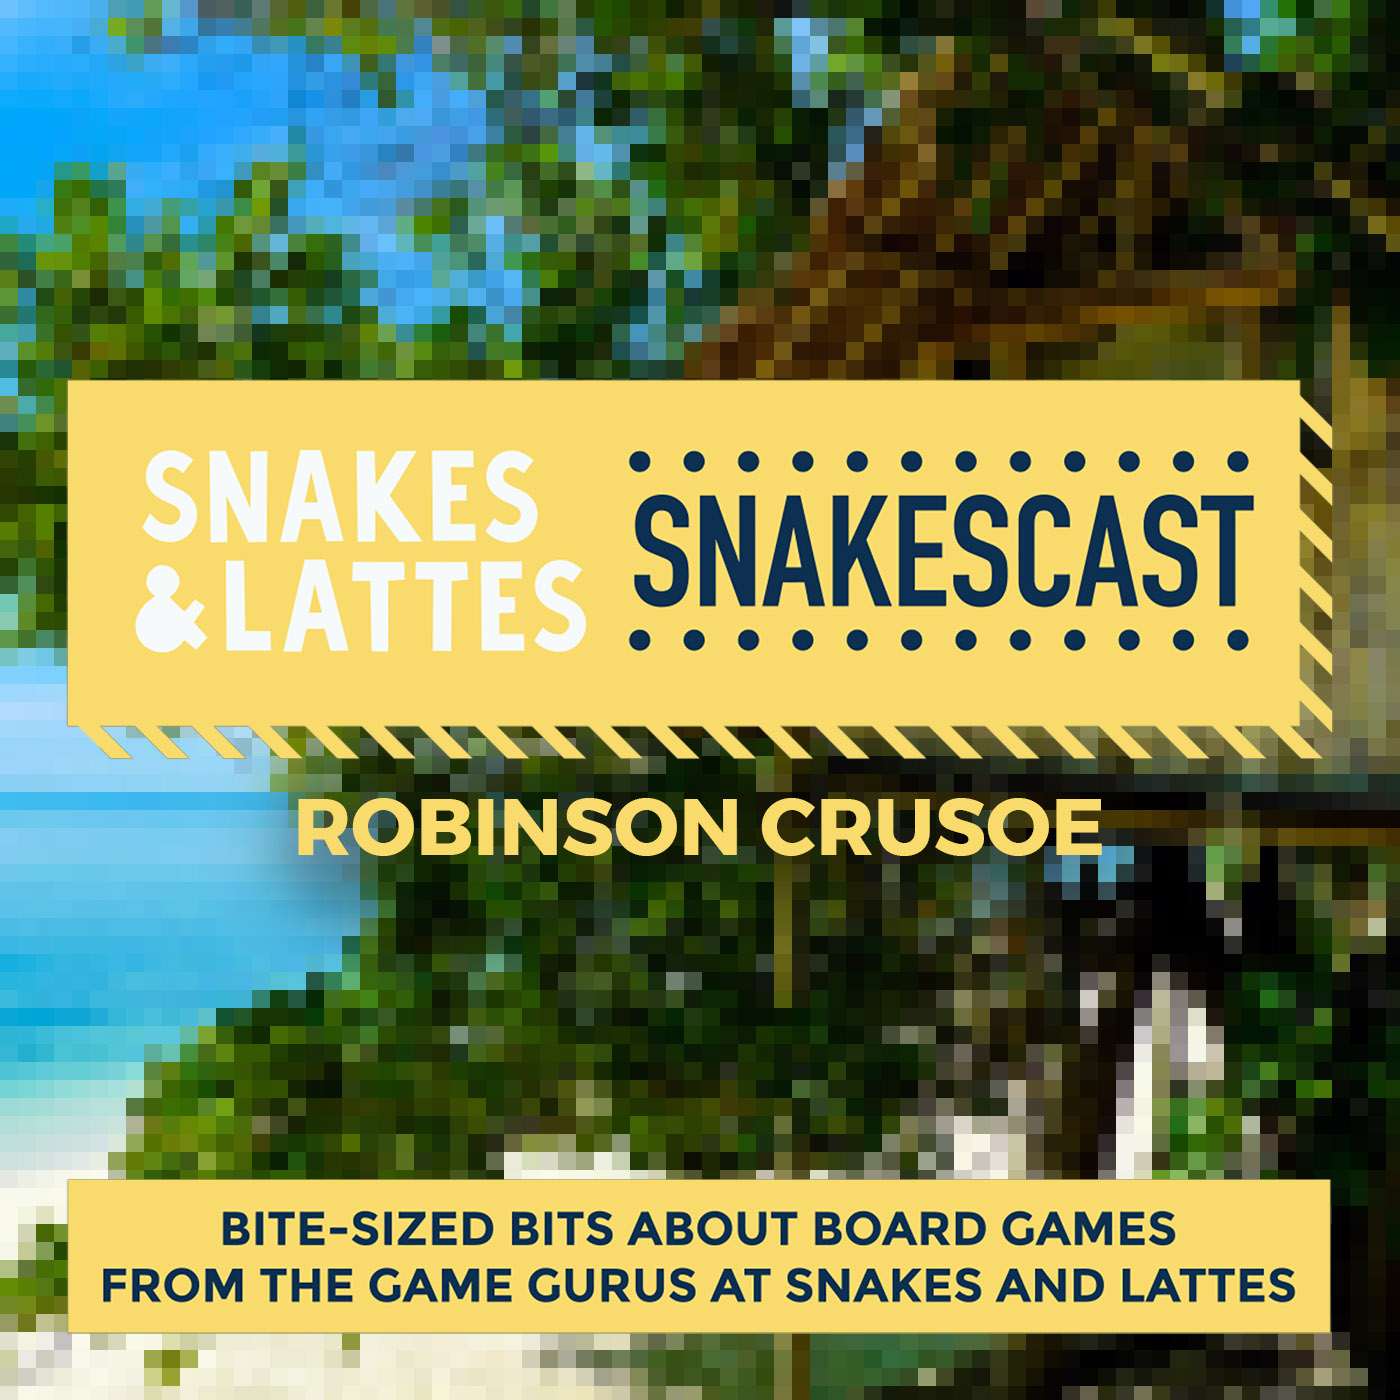 Robinson Crusoe, Part 3 - Escaping the Island